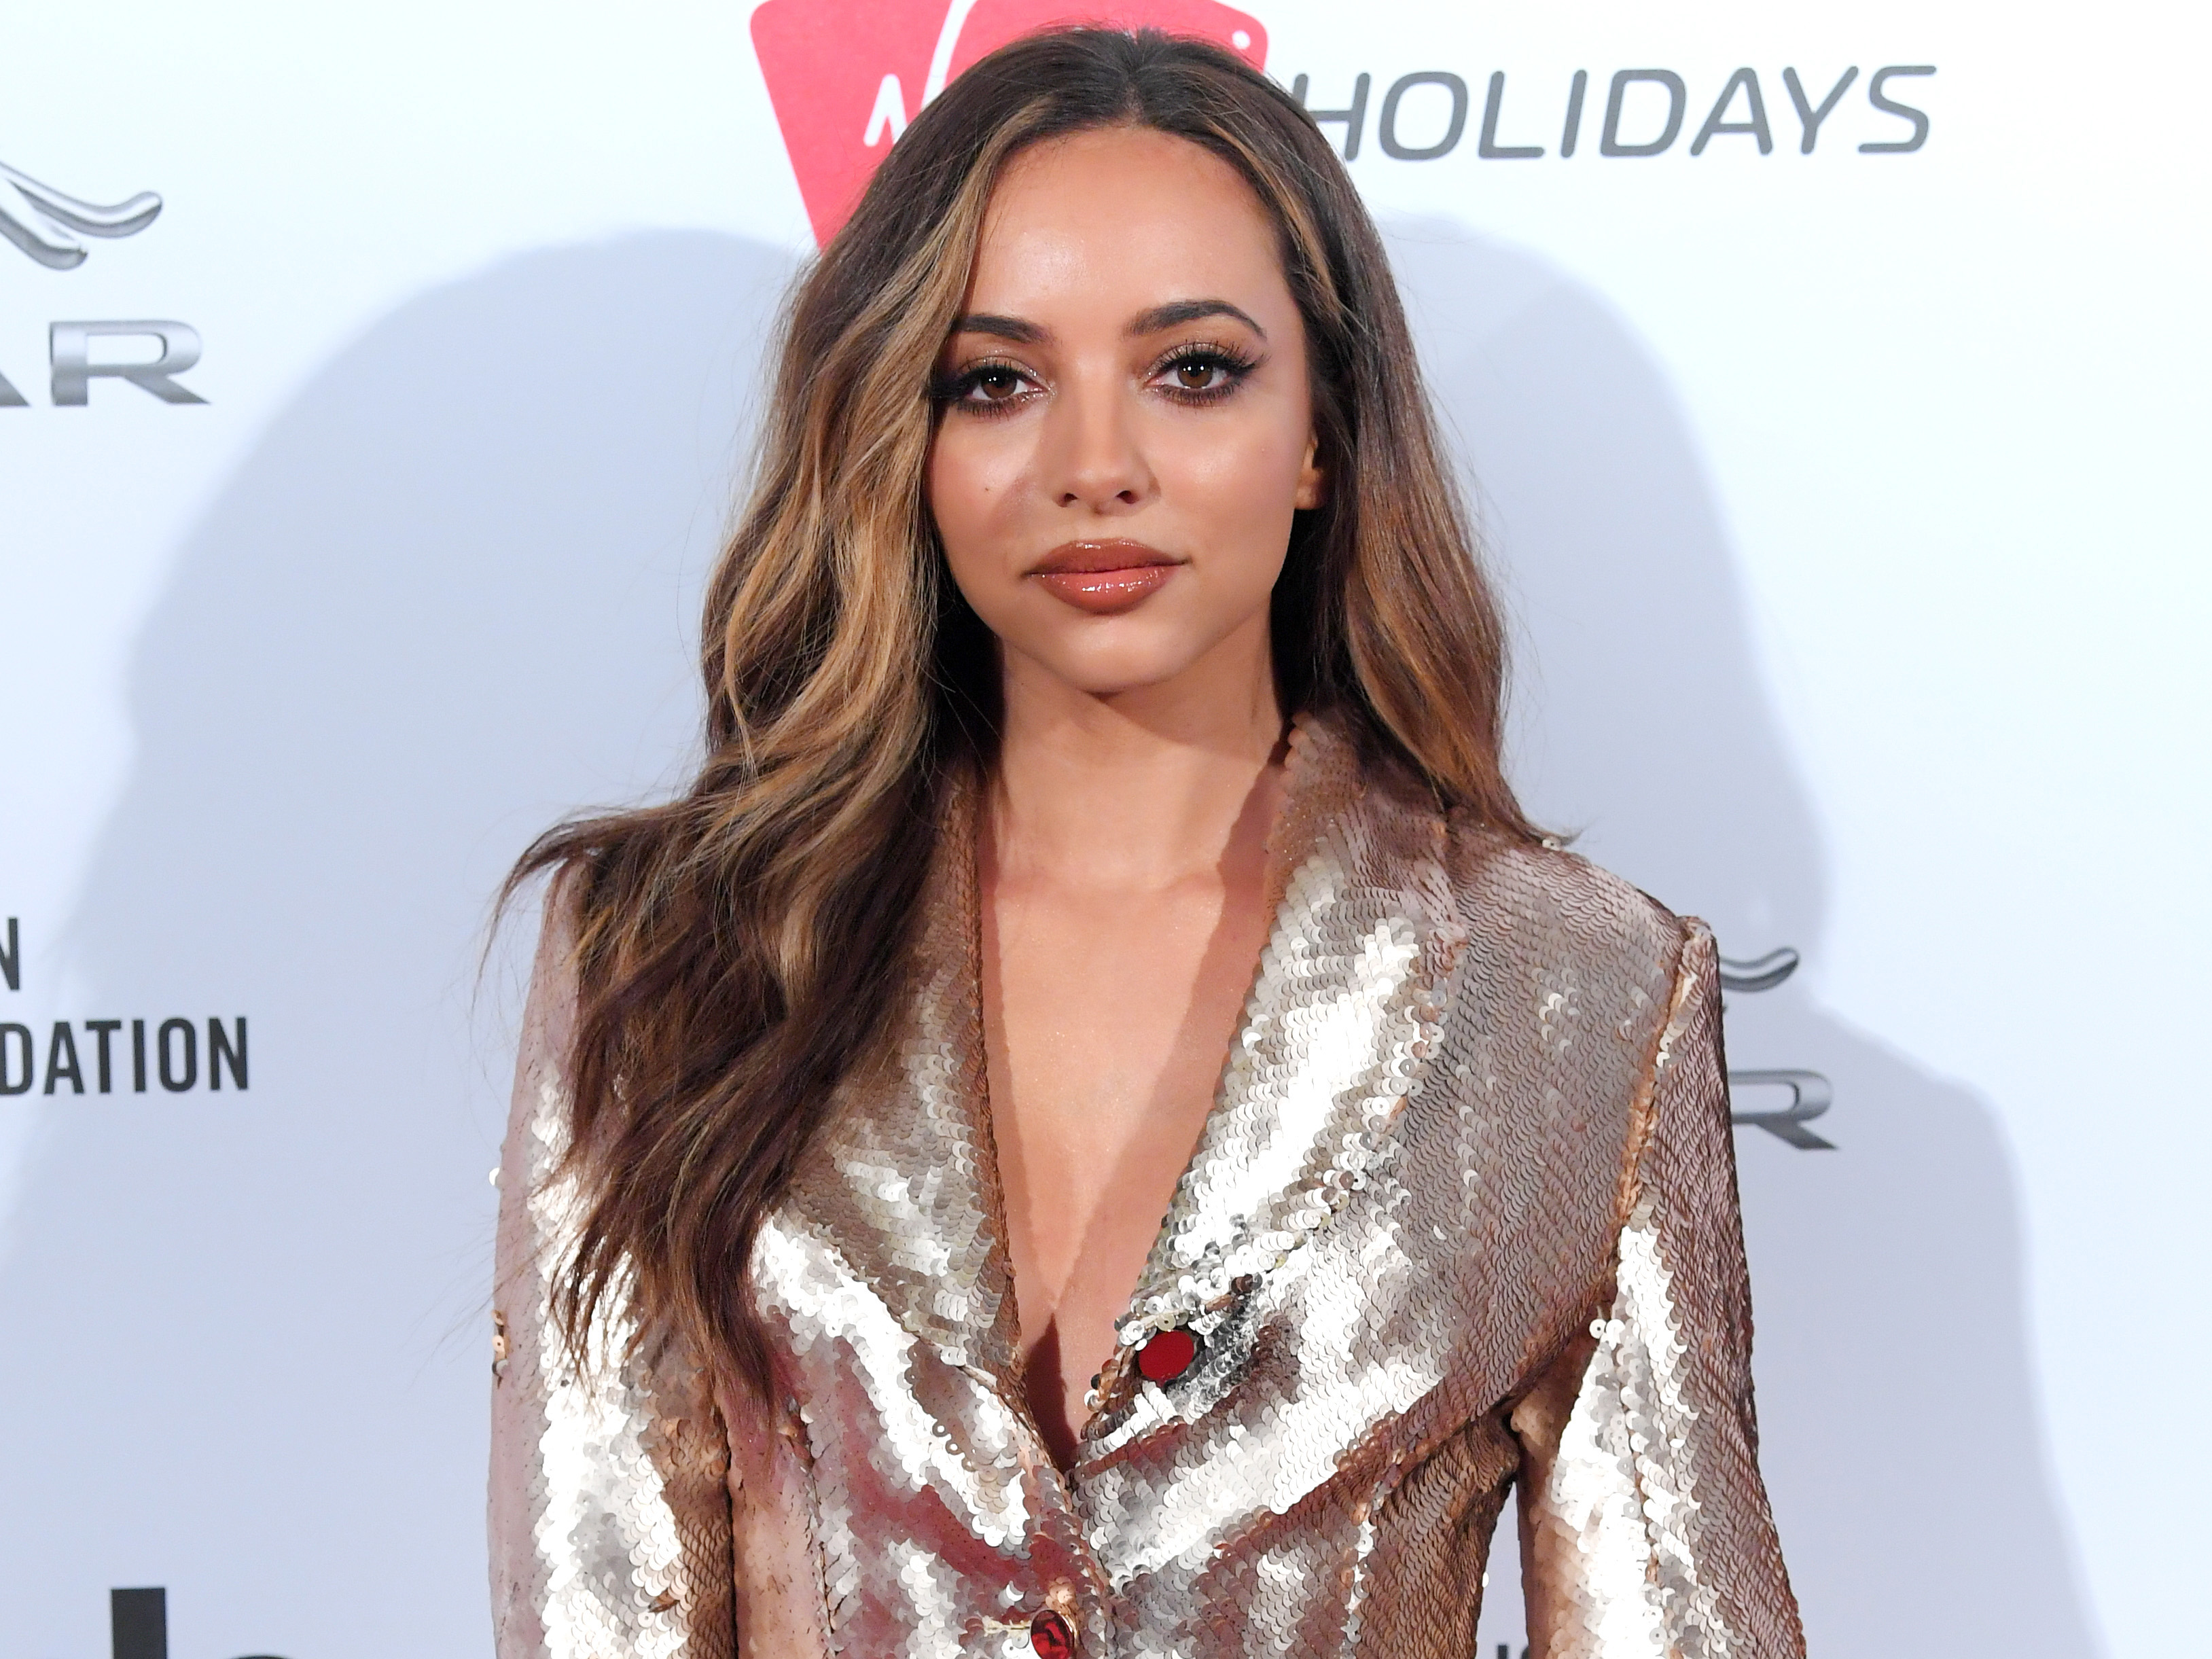 Pics Jade Thirlwall nude photos 2019